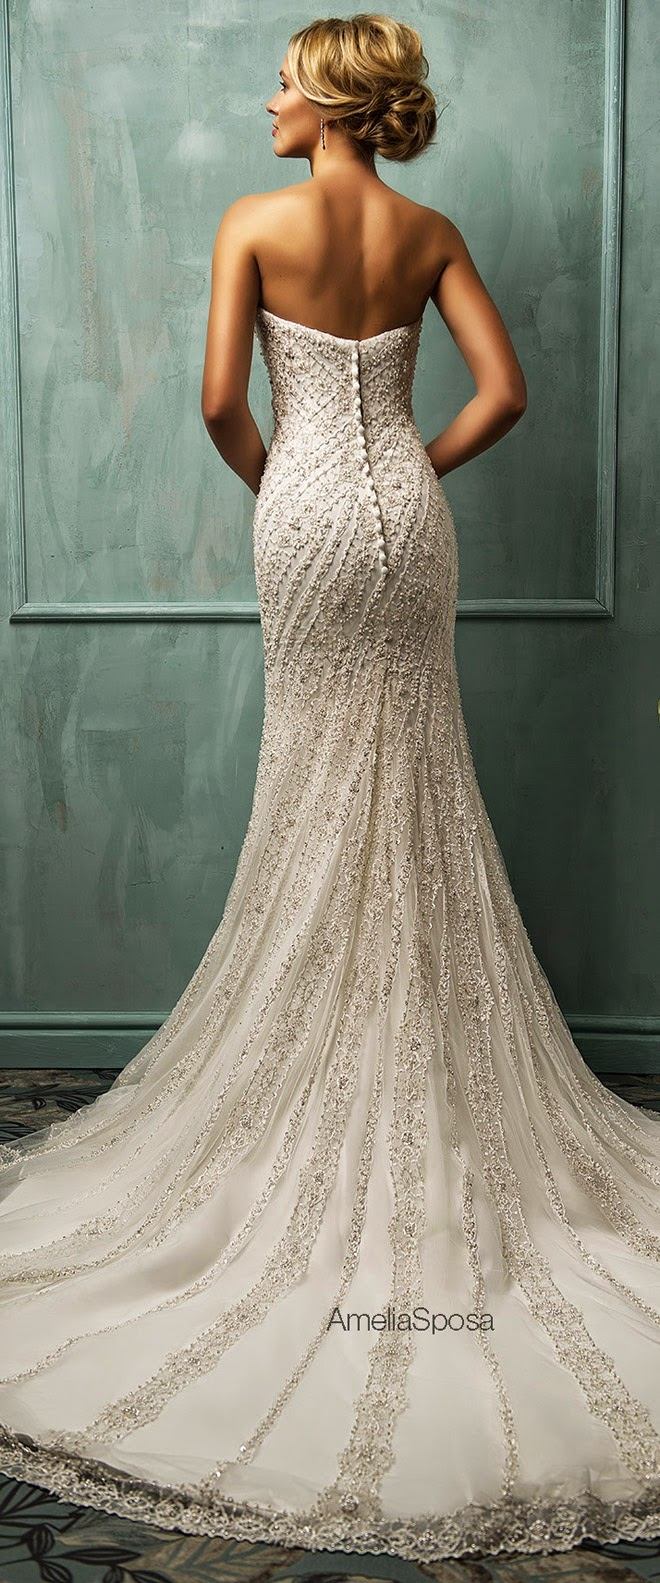 Amelia sposa 2014 wedding dresses belle the magazine for Wedding dress stores in arkansas